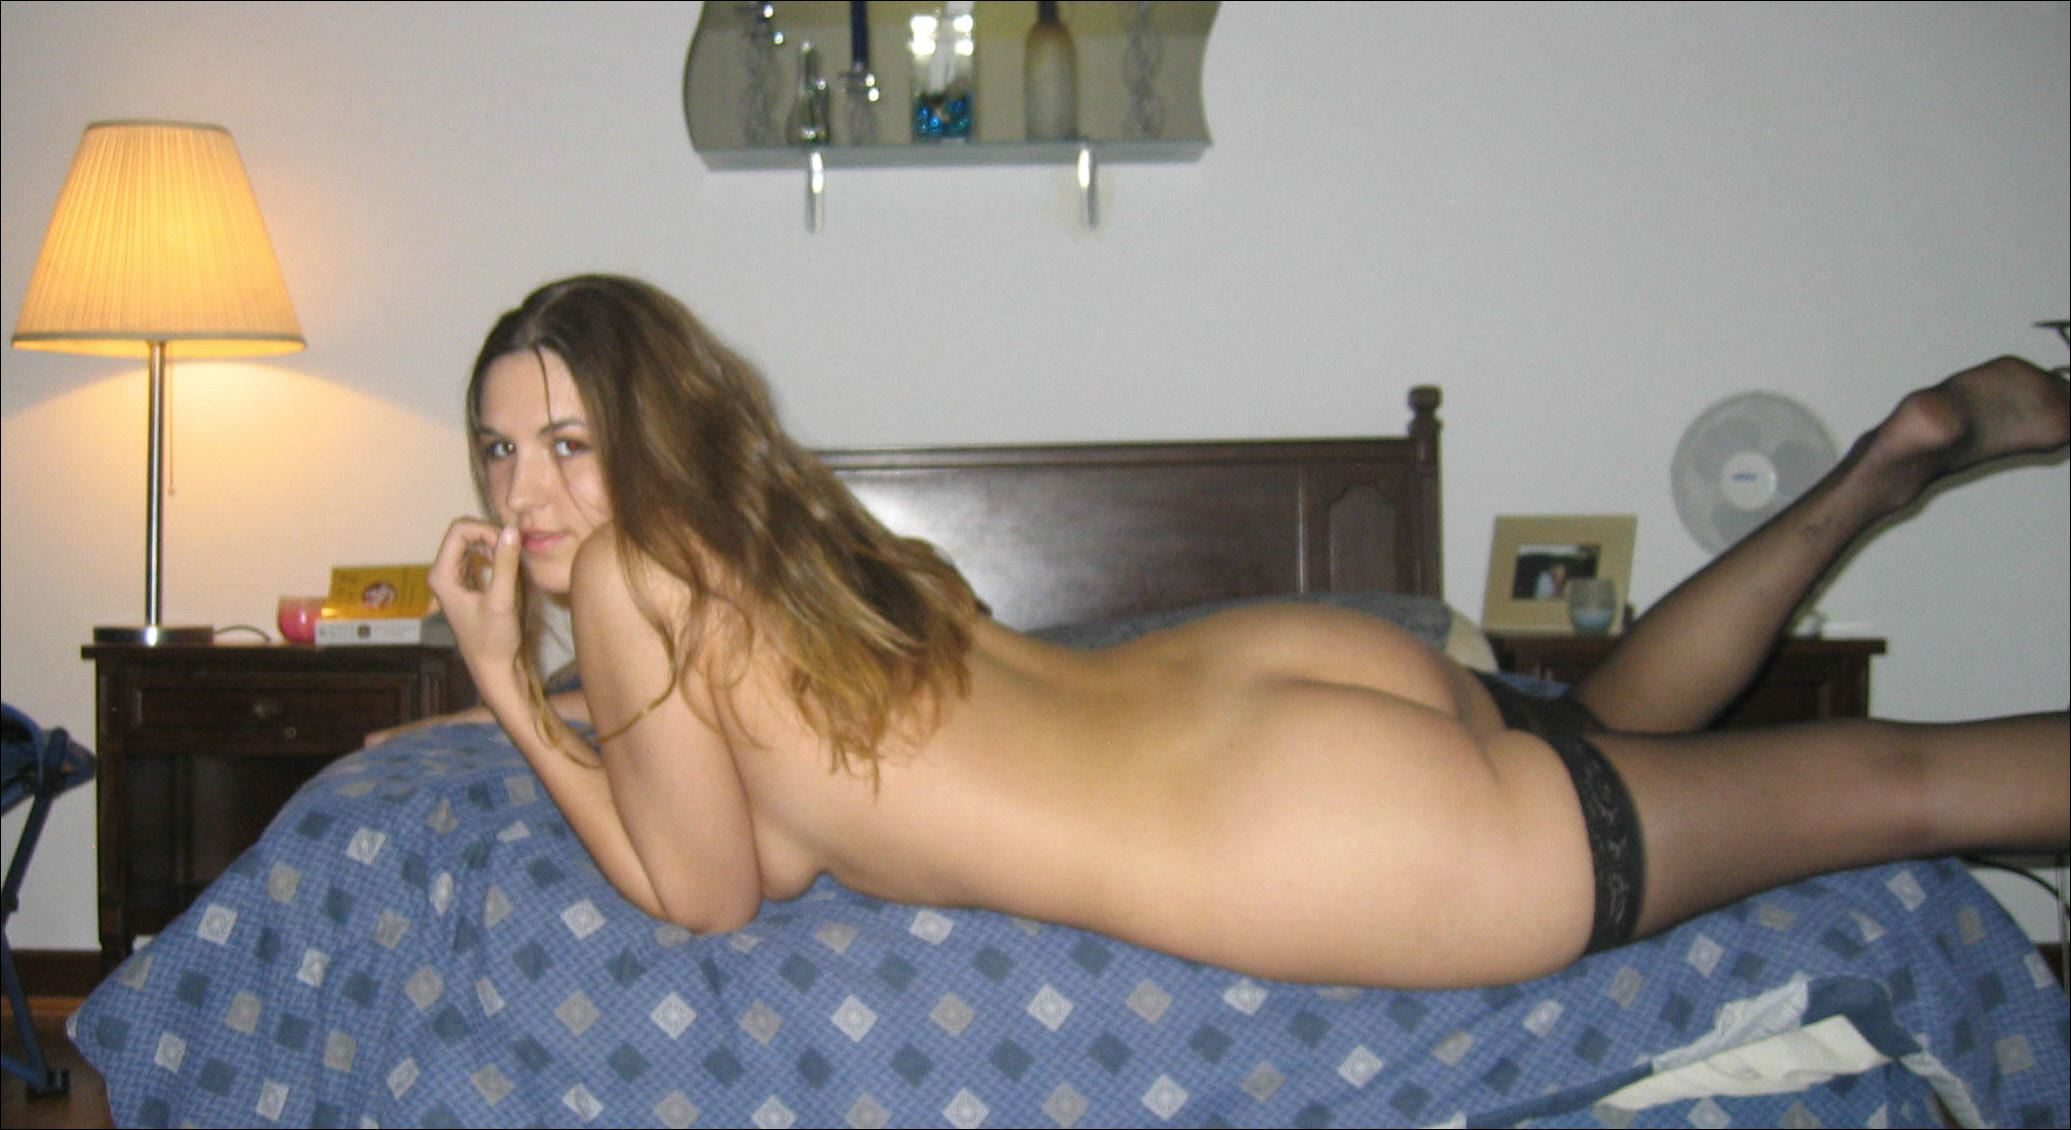 Amateur pics from manchester, kinky sex and positions